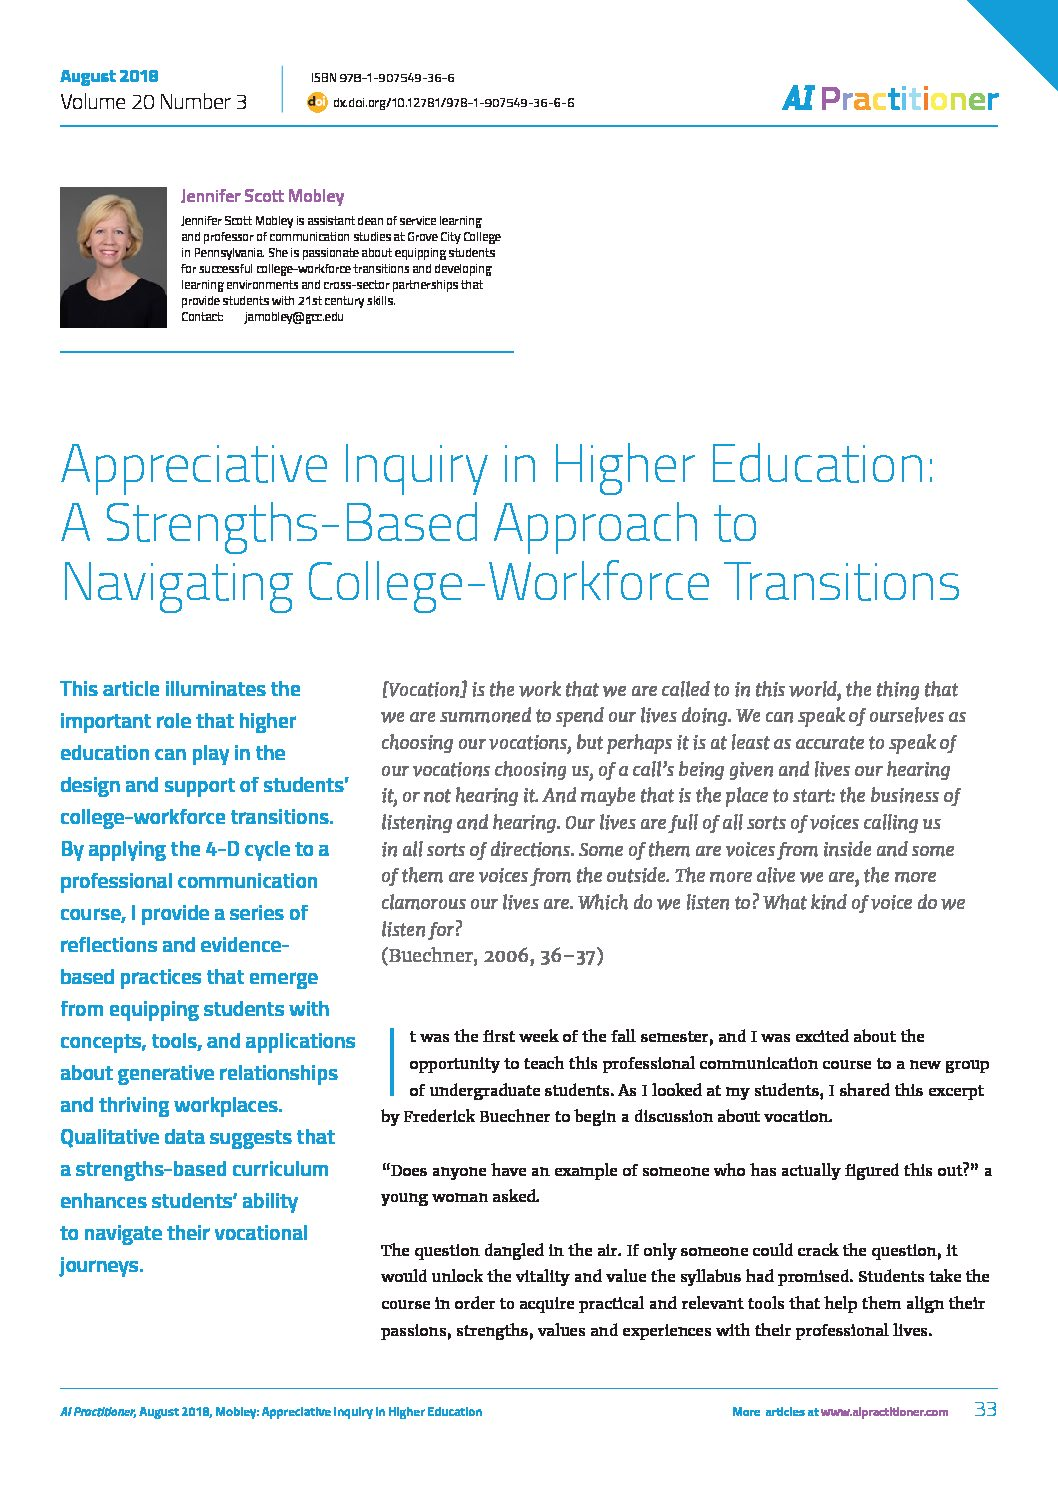 aip-august18-appreciative-voice-ai-in-higher-education